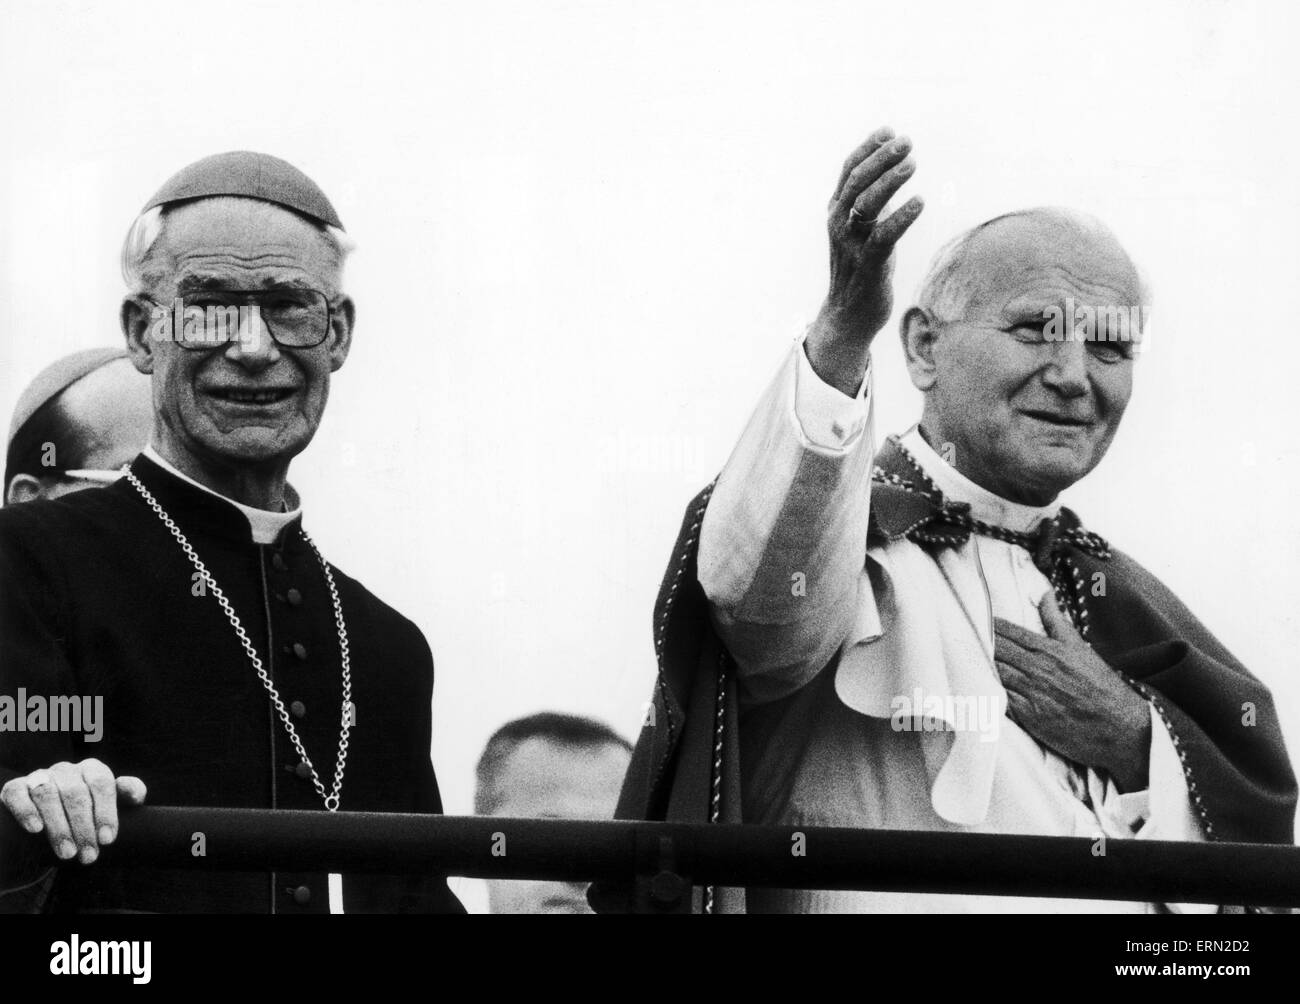 Pope John Paul II accompanied by Bishop, blesses congregation at Mass, Heaton Park, Manchester, Monday 31st  May - Stock Image